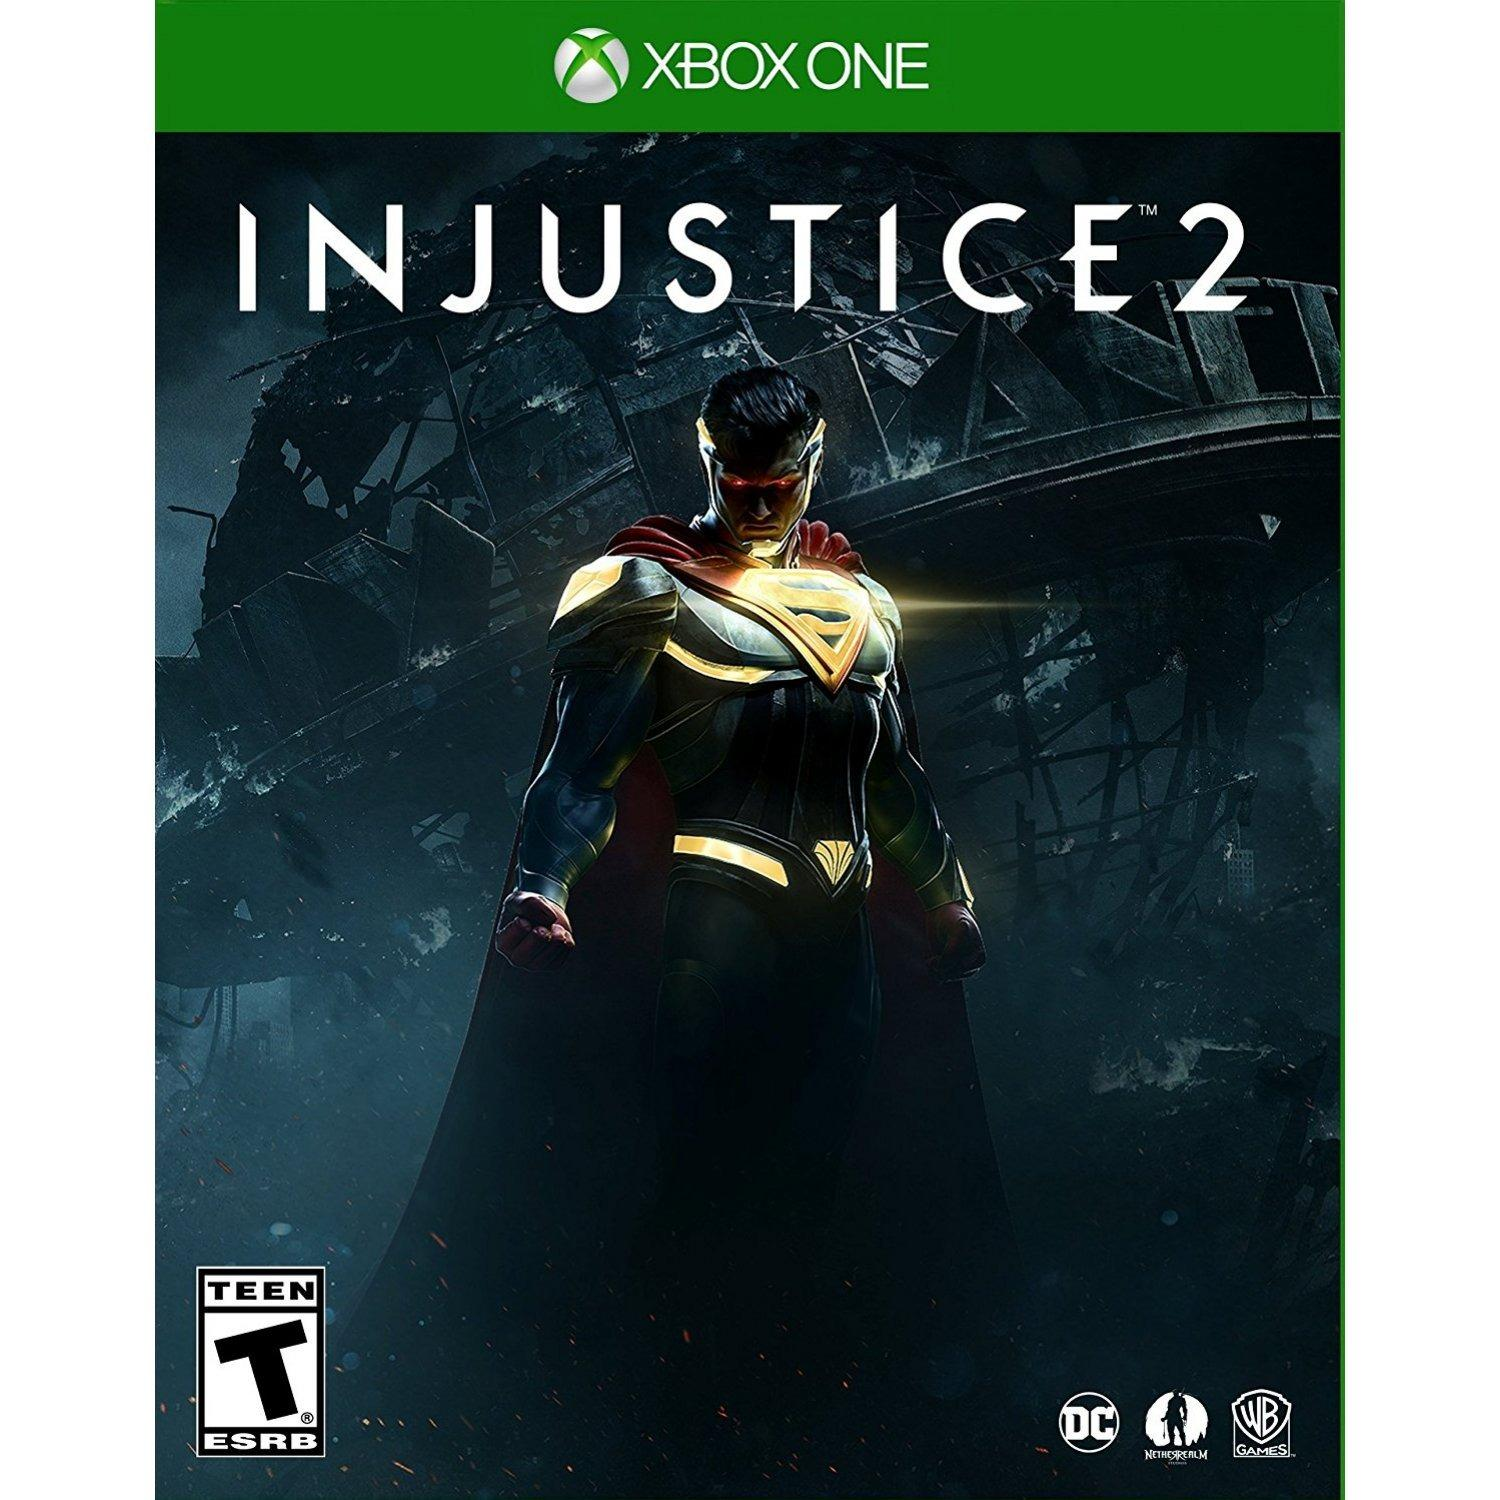 Xbox One Injustice 2 Review